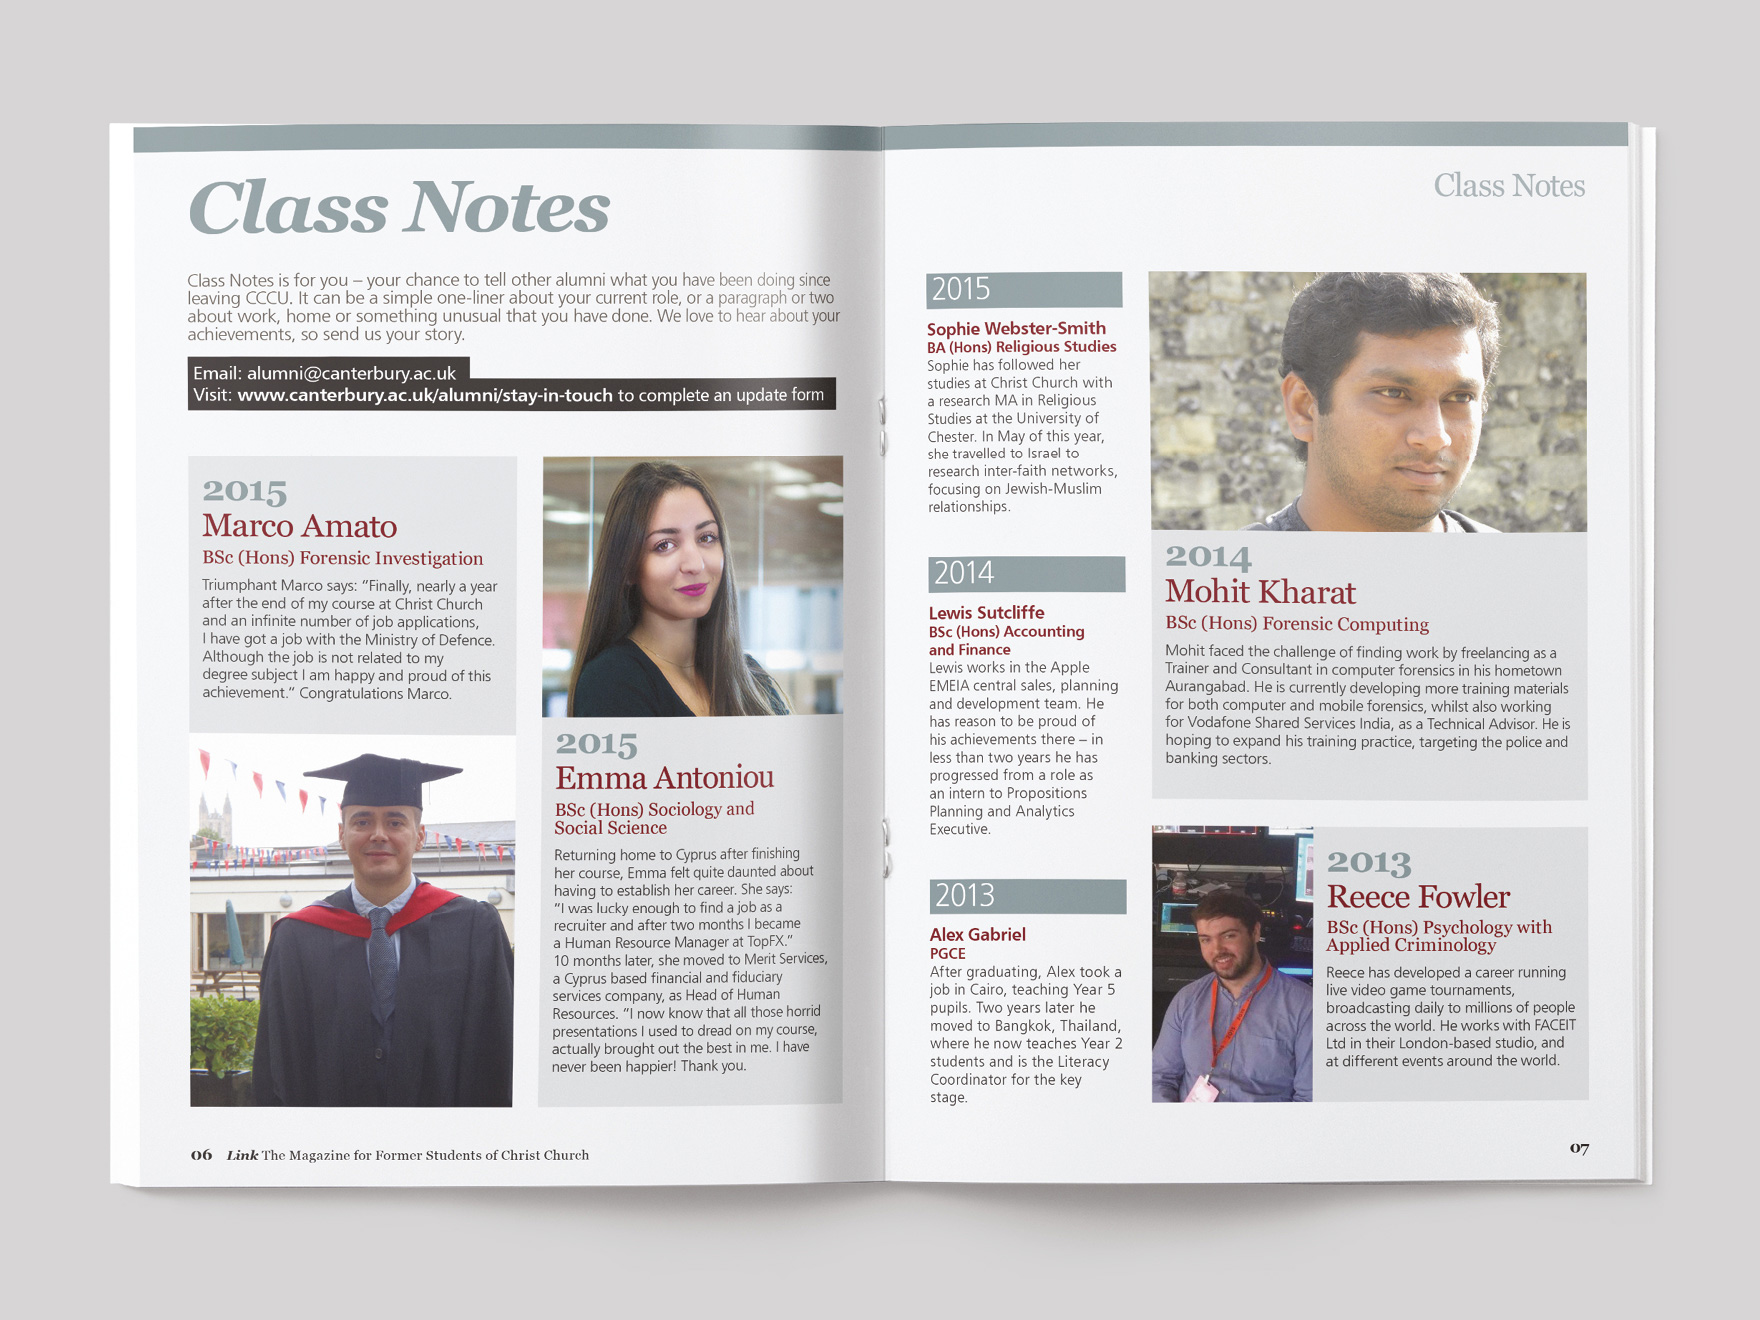 Inside pages from Link magazine, showing the class notes section